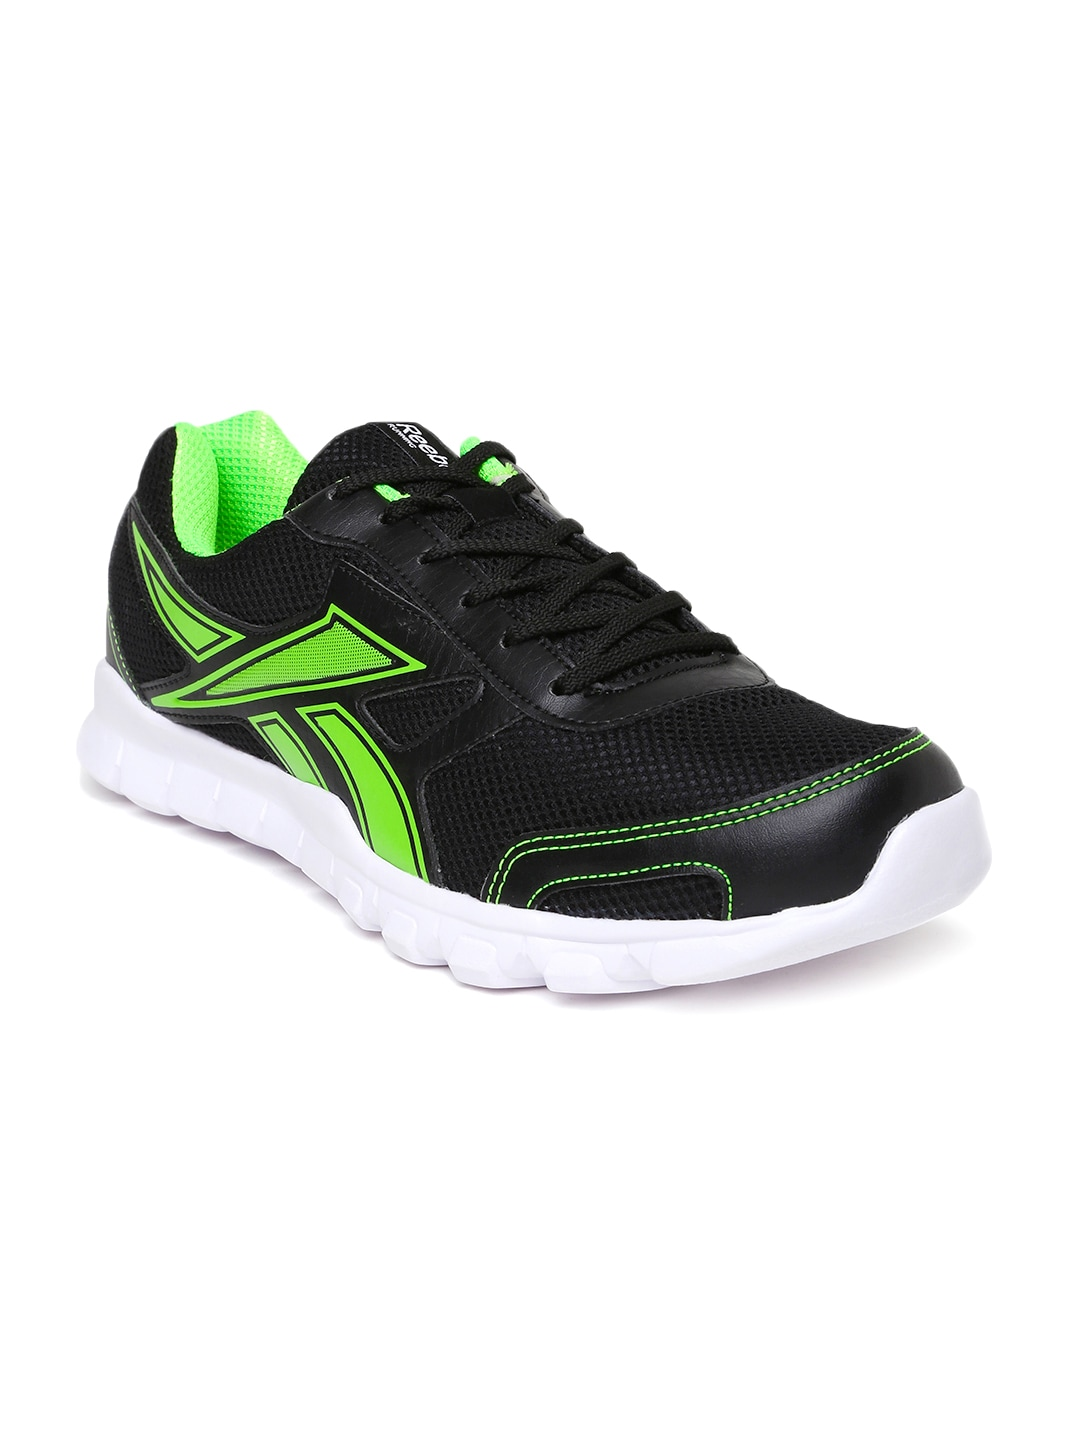 Reebok Sports Shoes - Buy Reebok Sports Shoes in India  1025ab57f